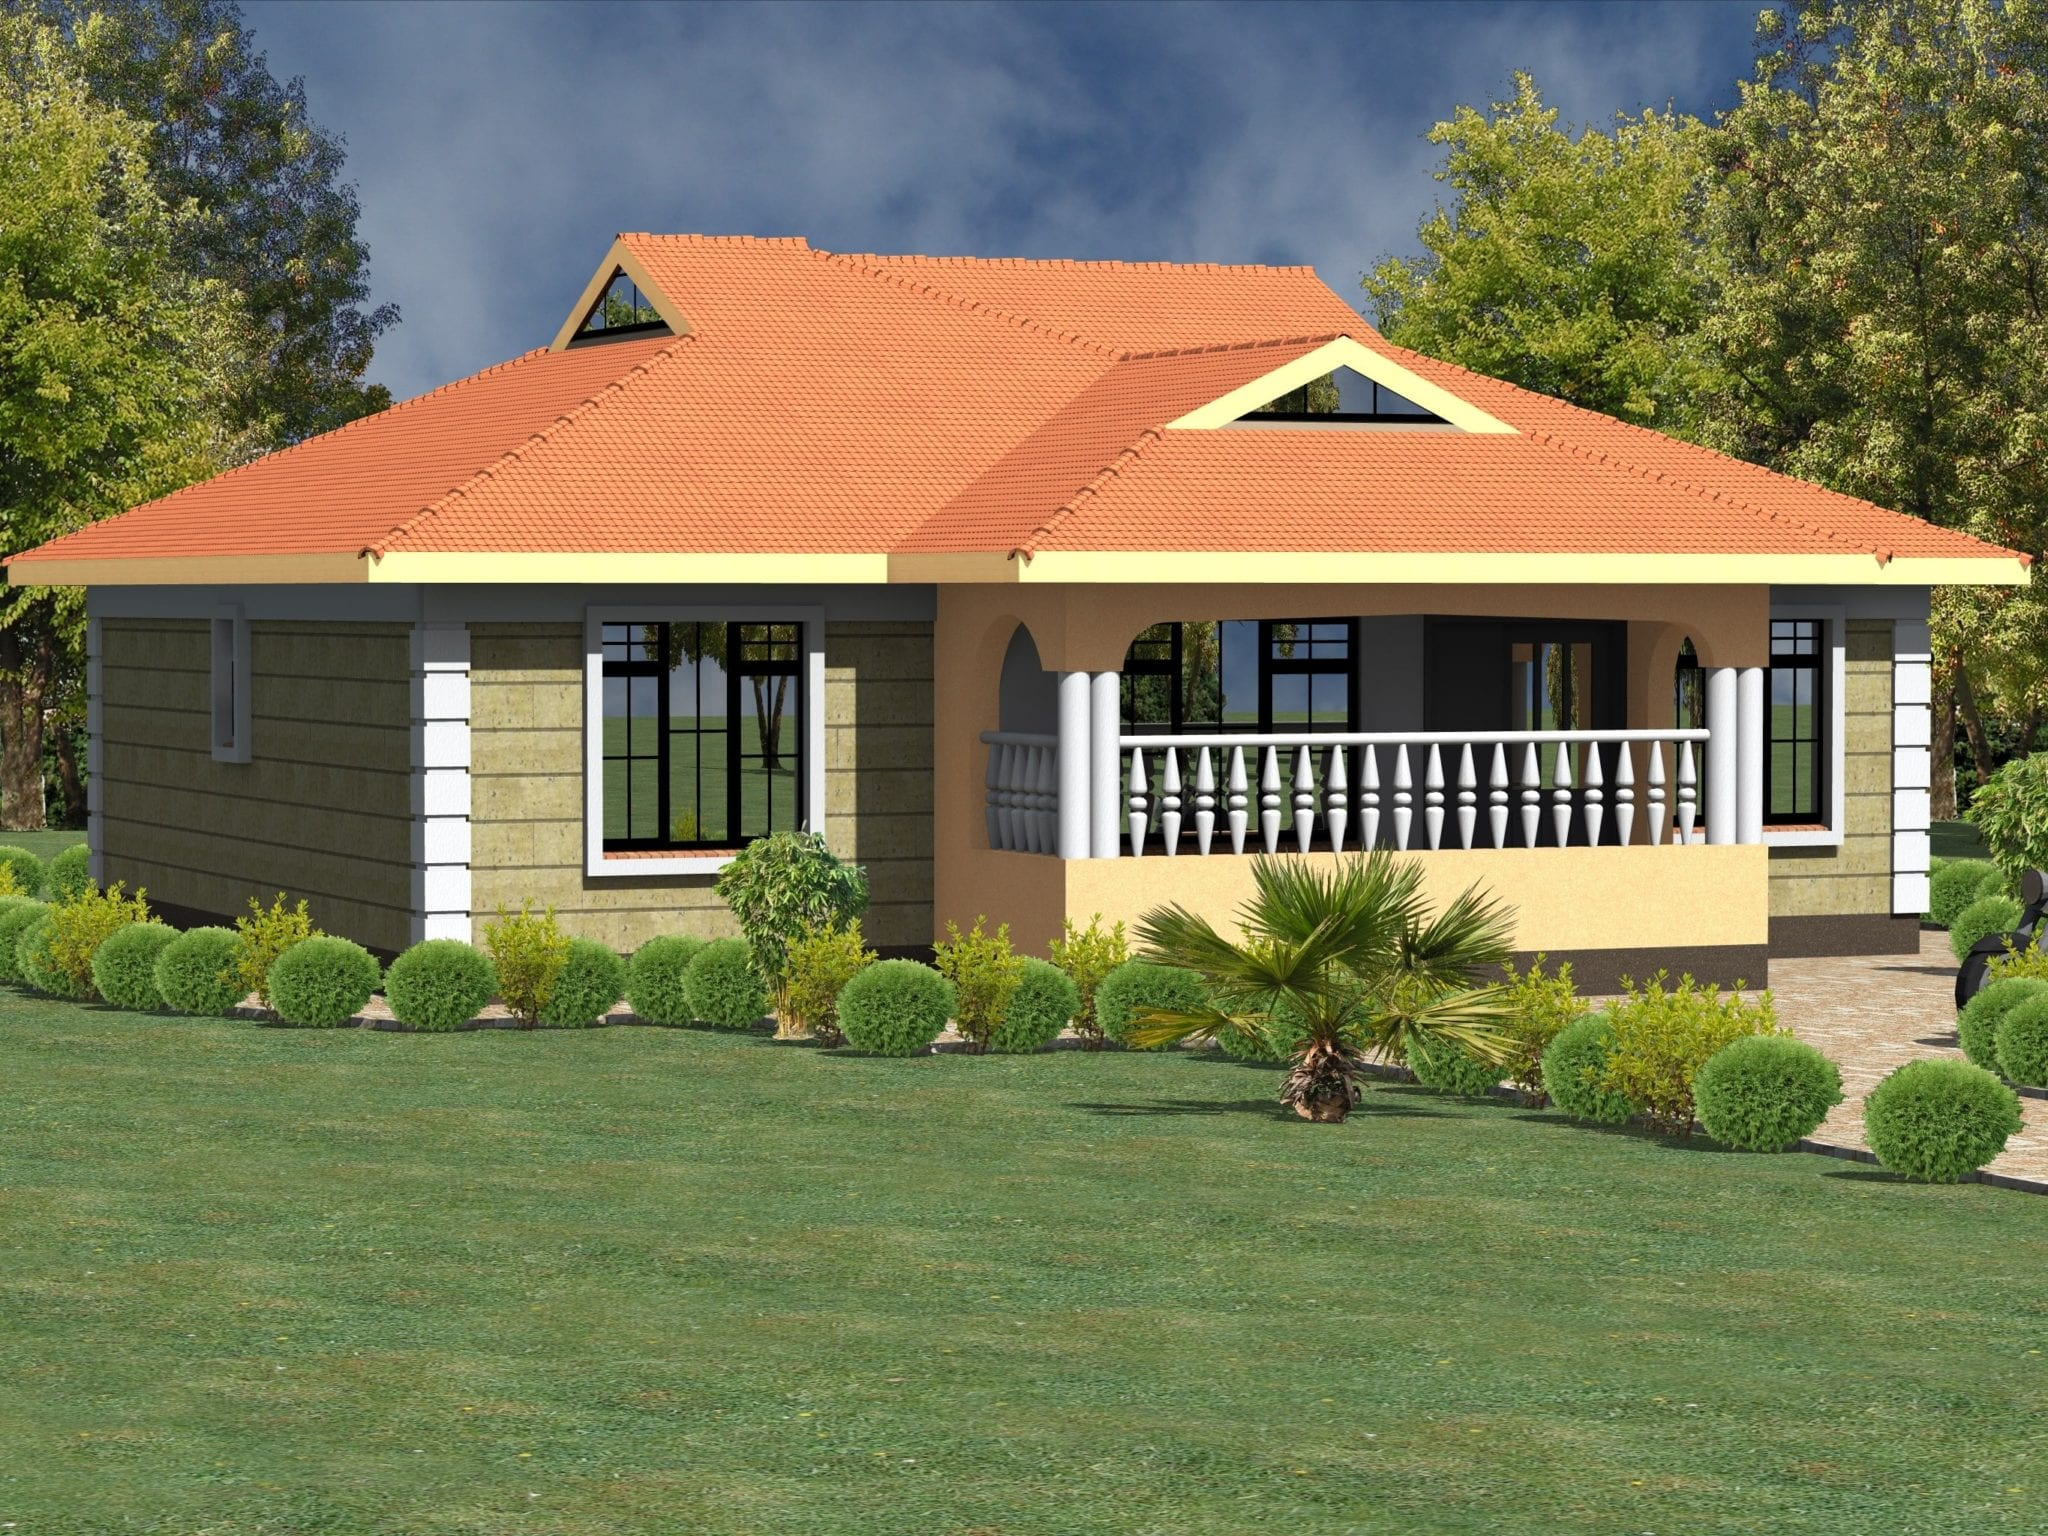 Some Best House Plans in Kenya: 3 Bedrooms Bungalows| HPD